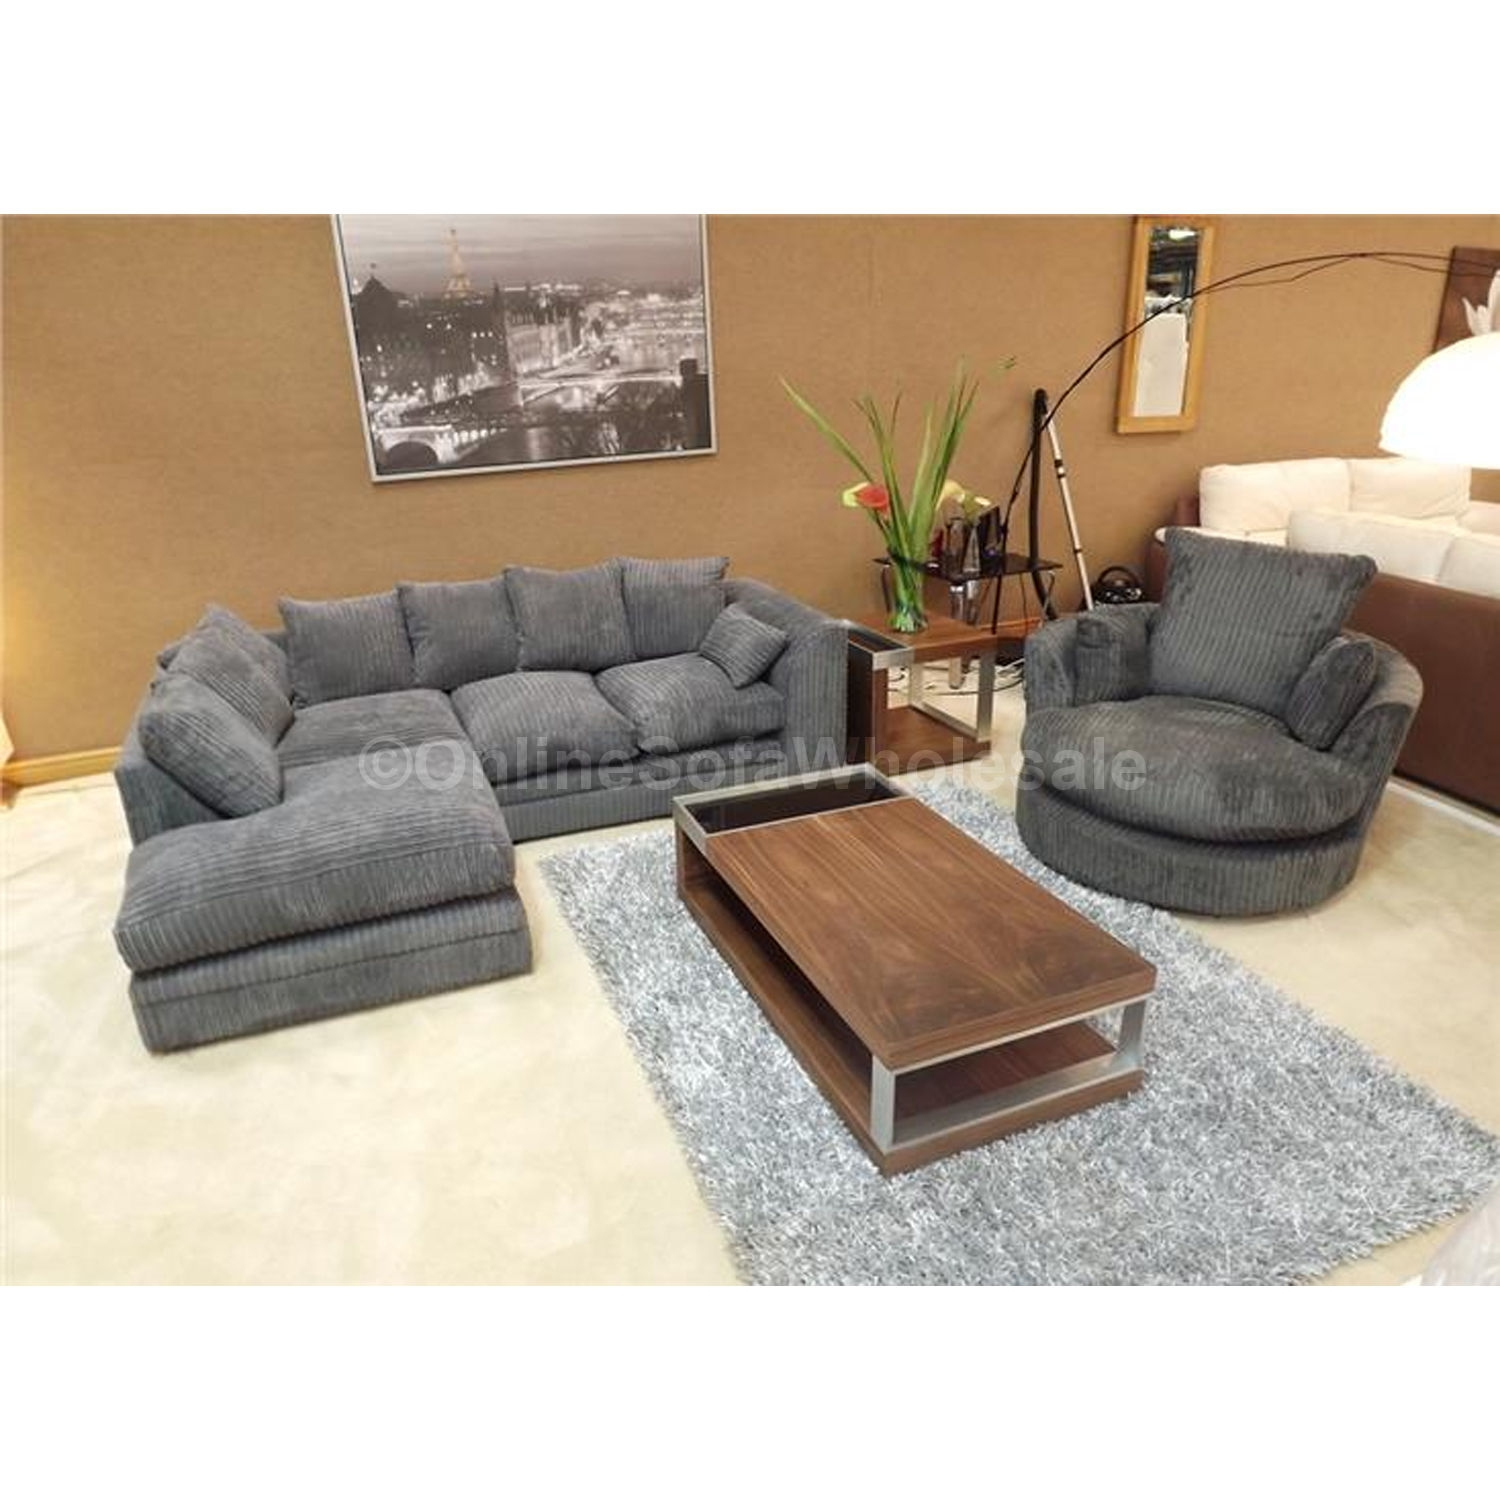 corner sofa and swivel chair wheel batteries 15 43 chairs ideas